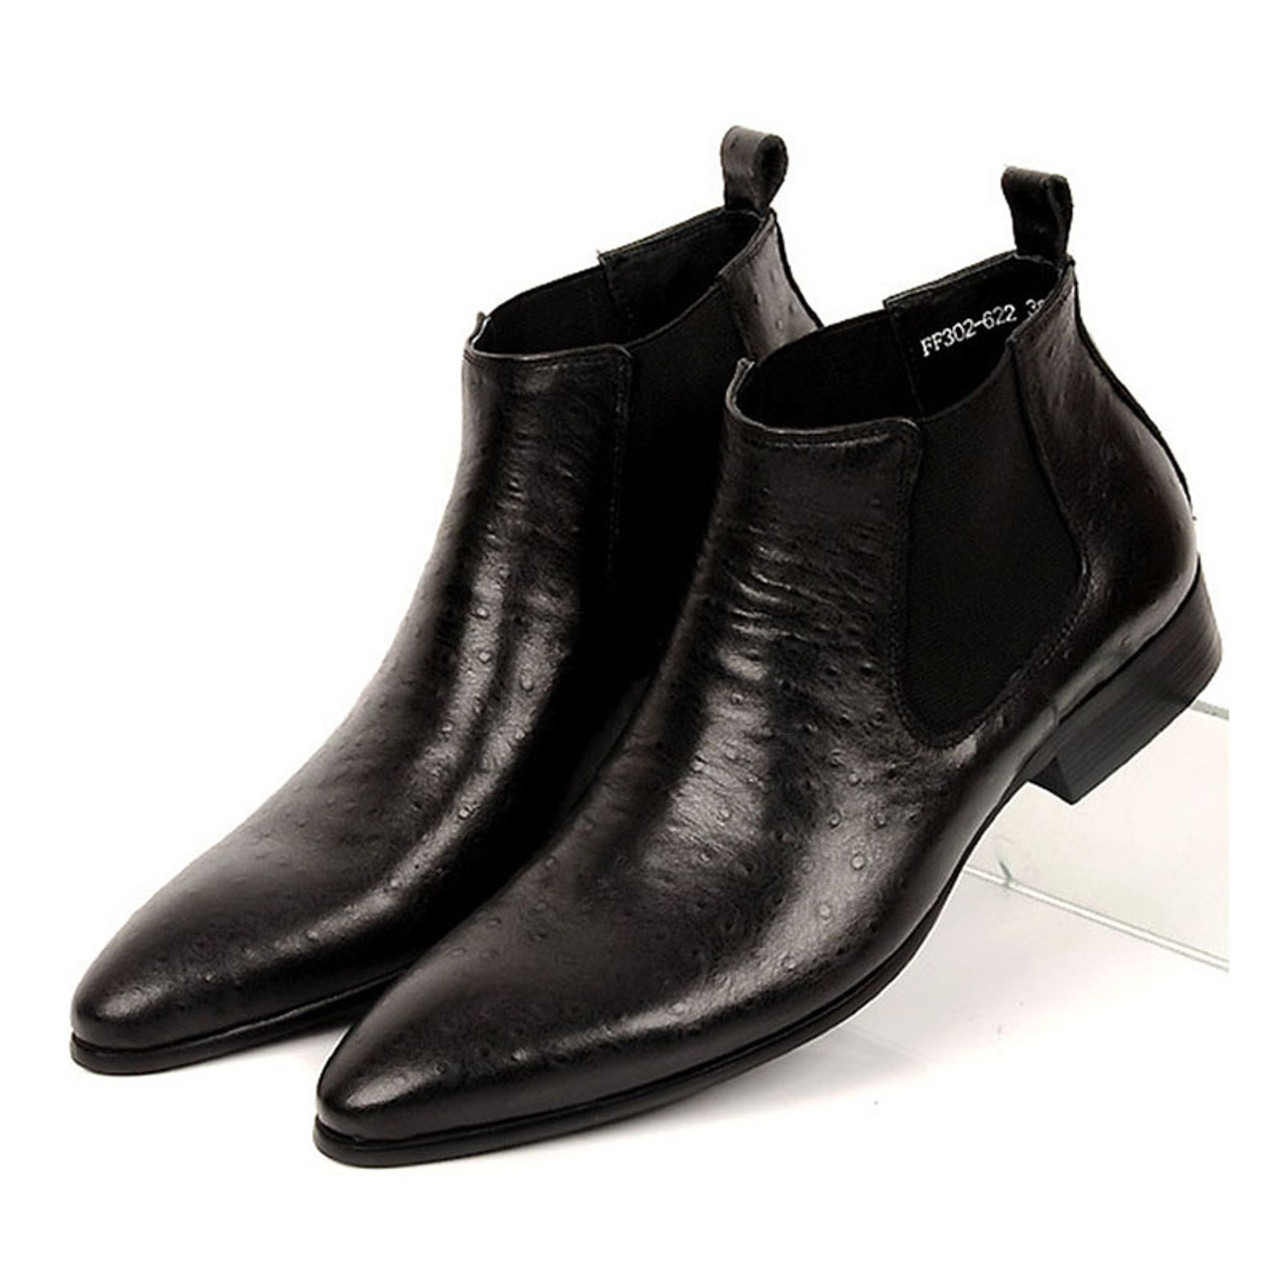 mens dress boots for sale online trendy ankle boots